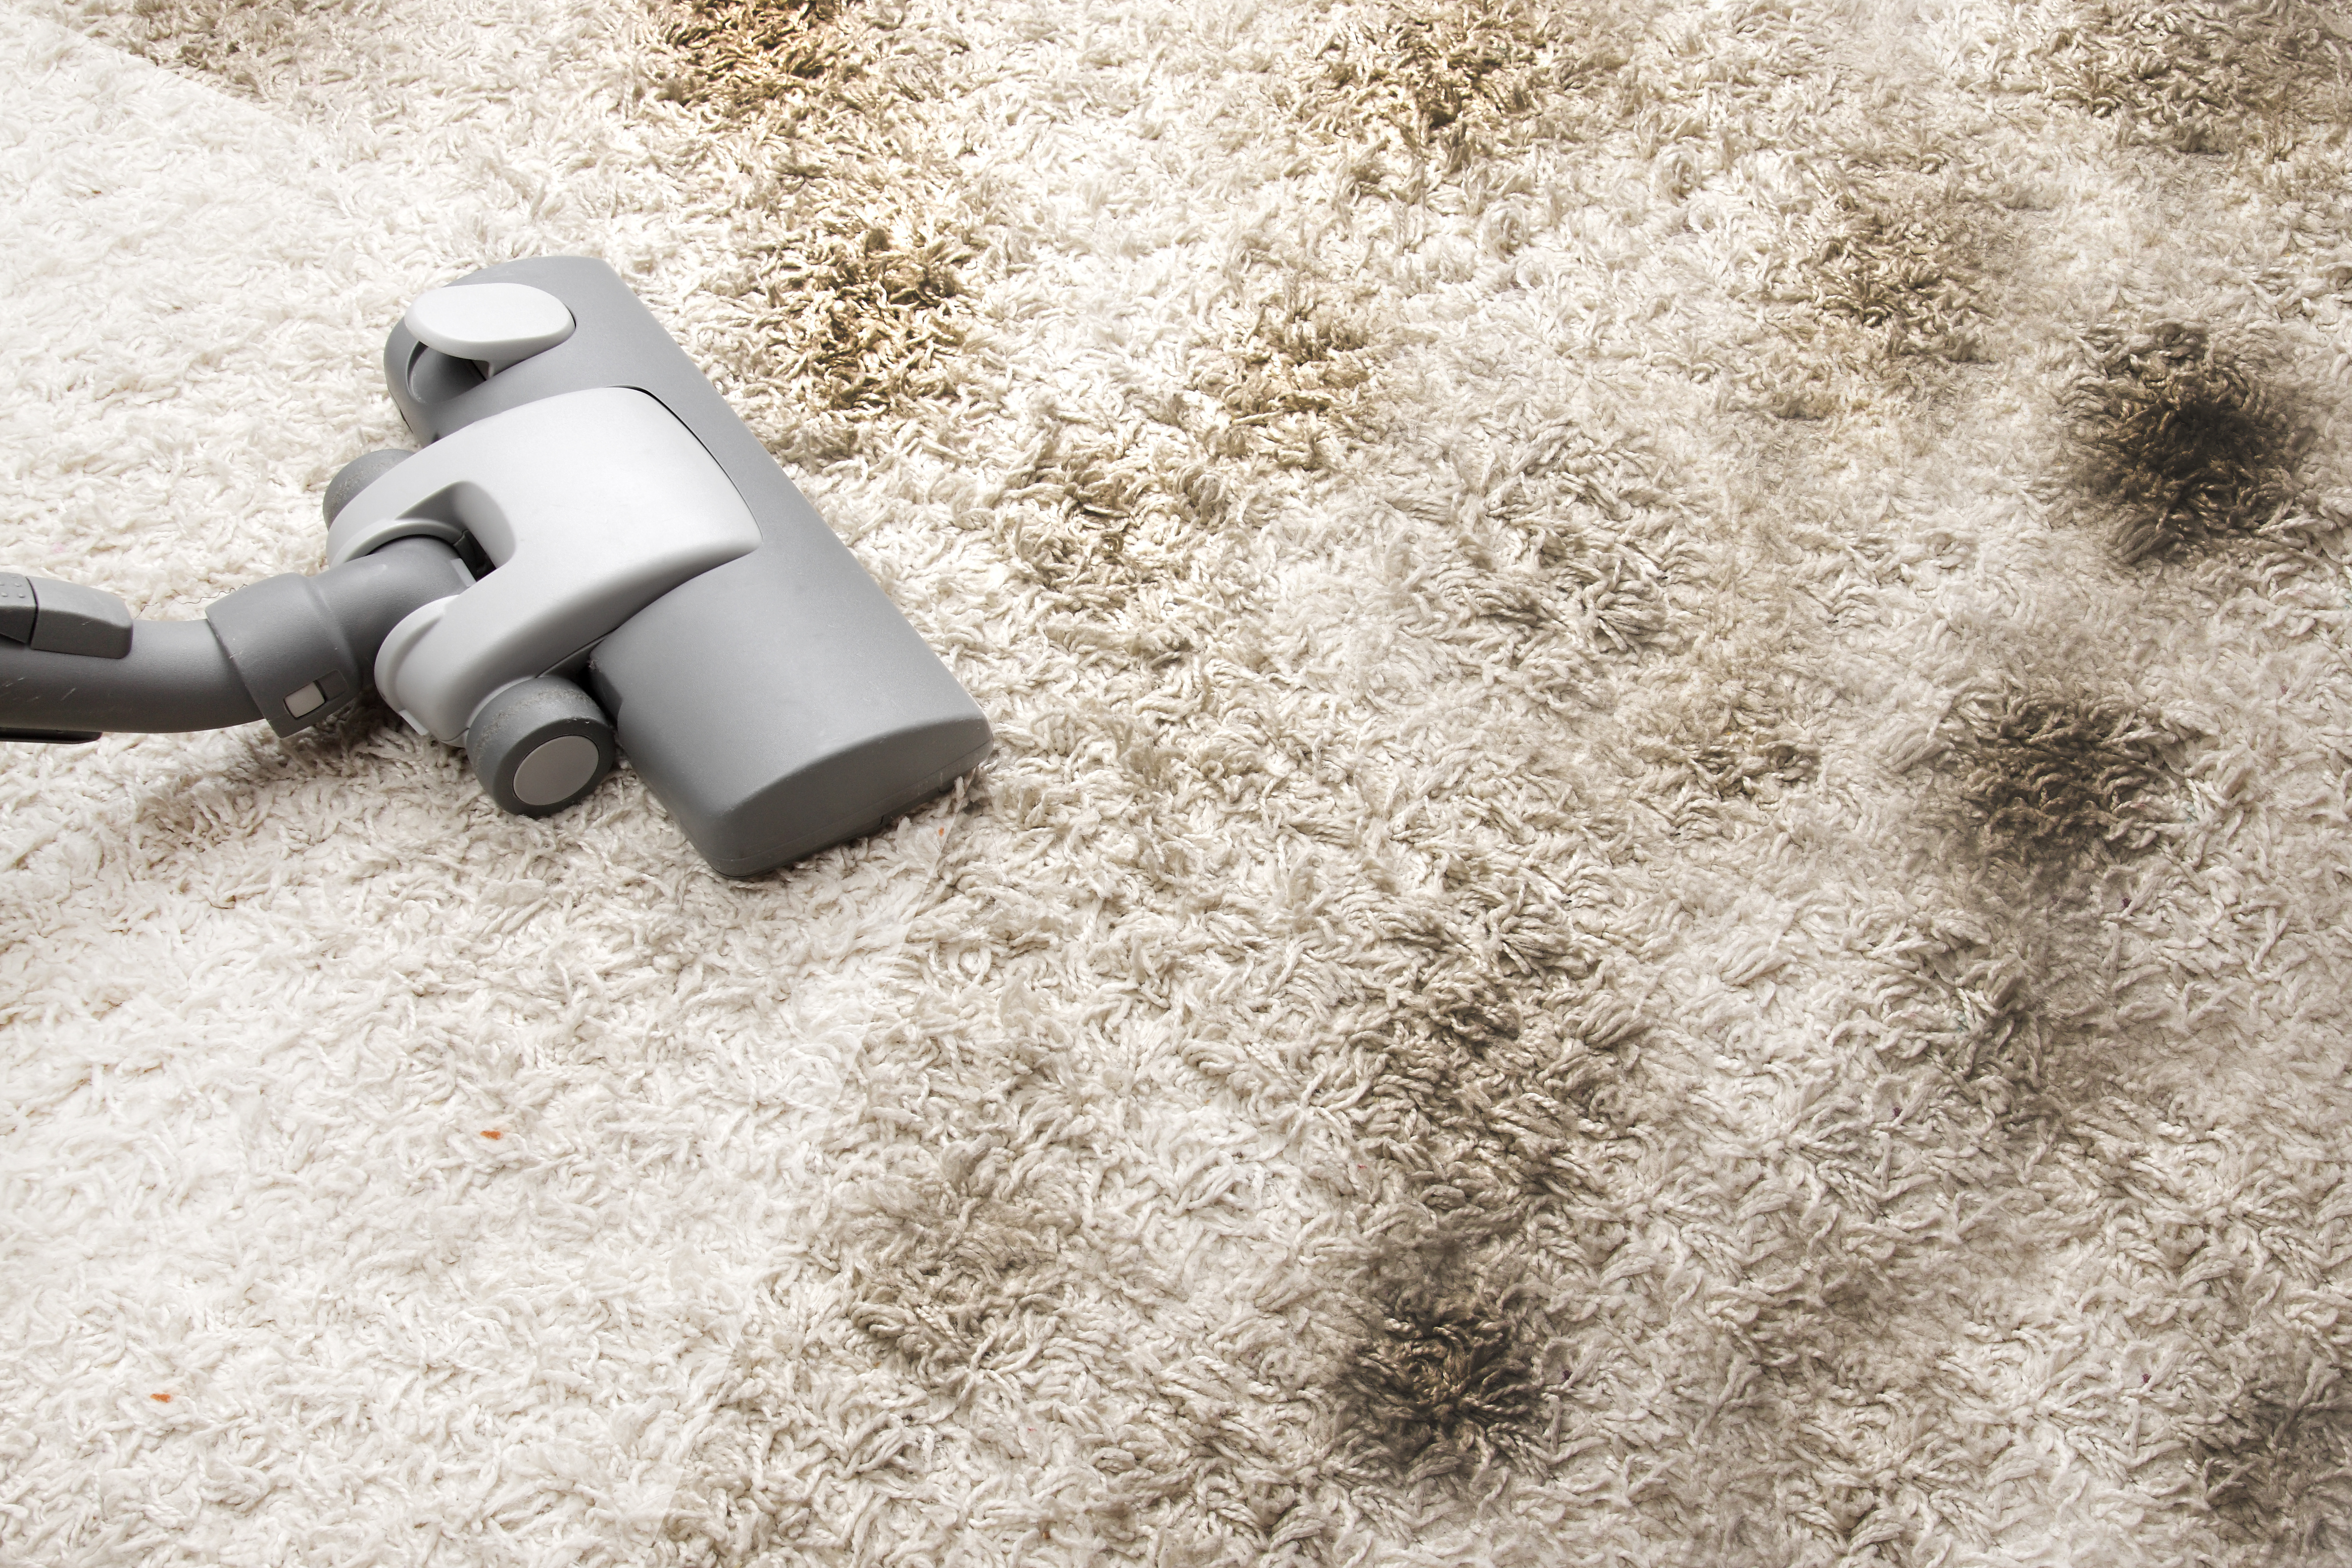 Cleaning Vacuuming Very Dirty Carpet